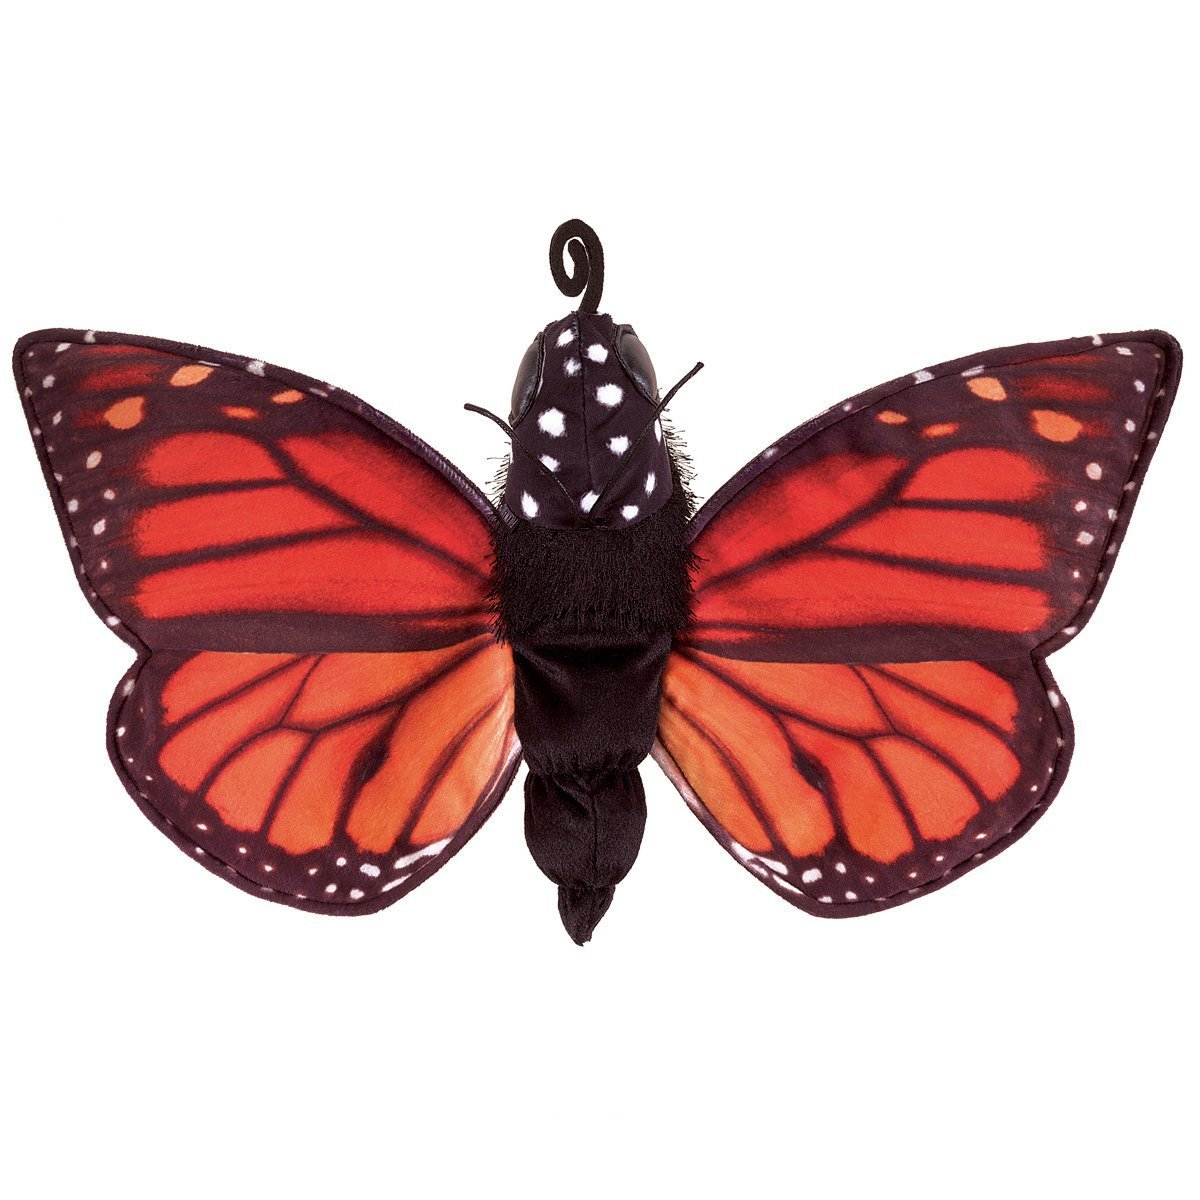 Folkmanis Hand Puppet - Monarch Butterfly Life Cycle image